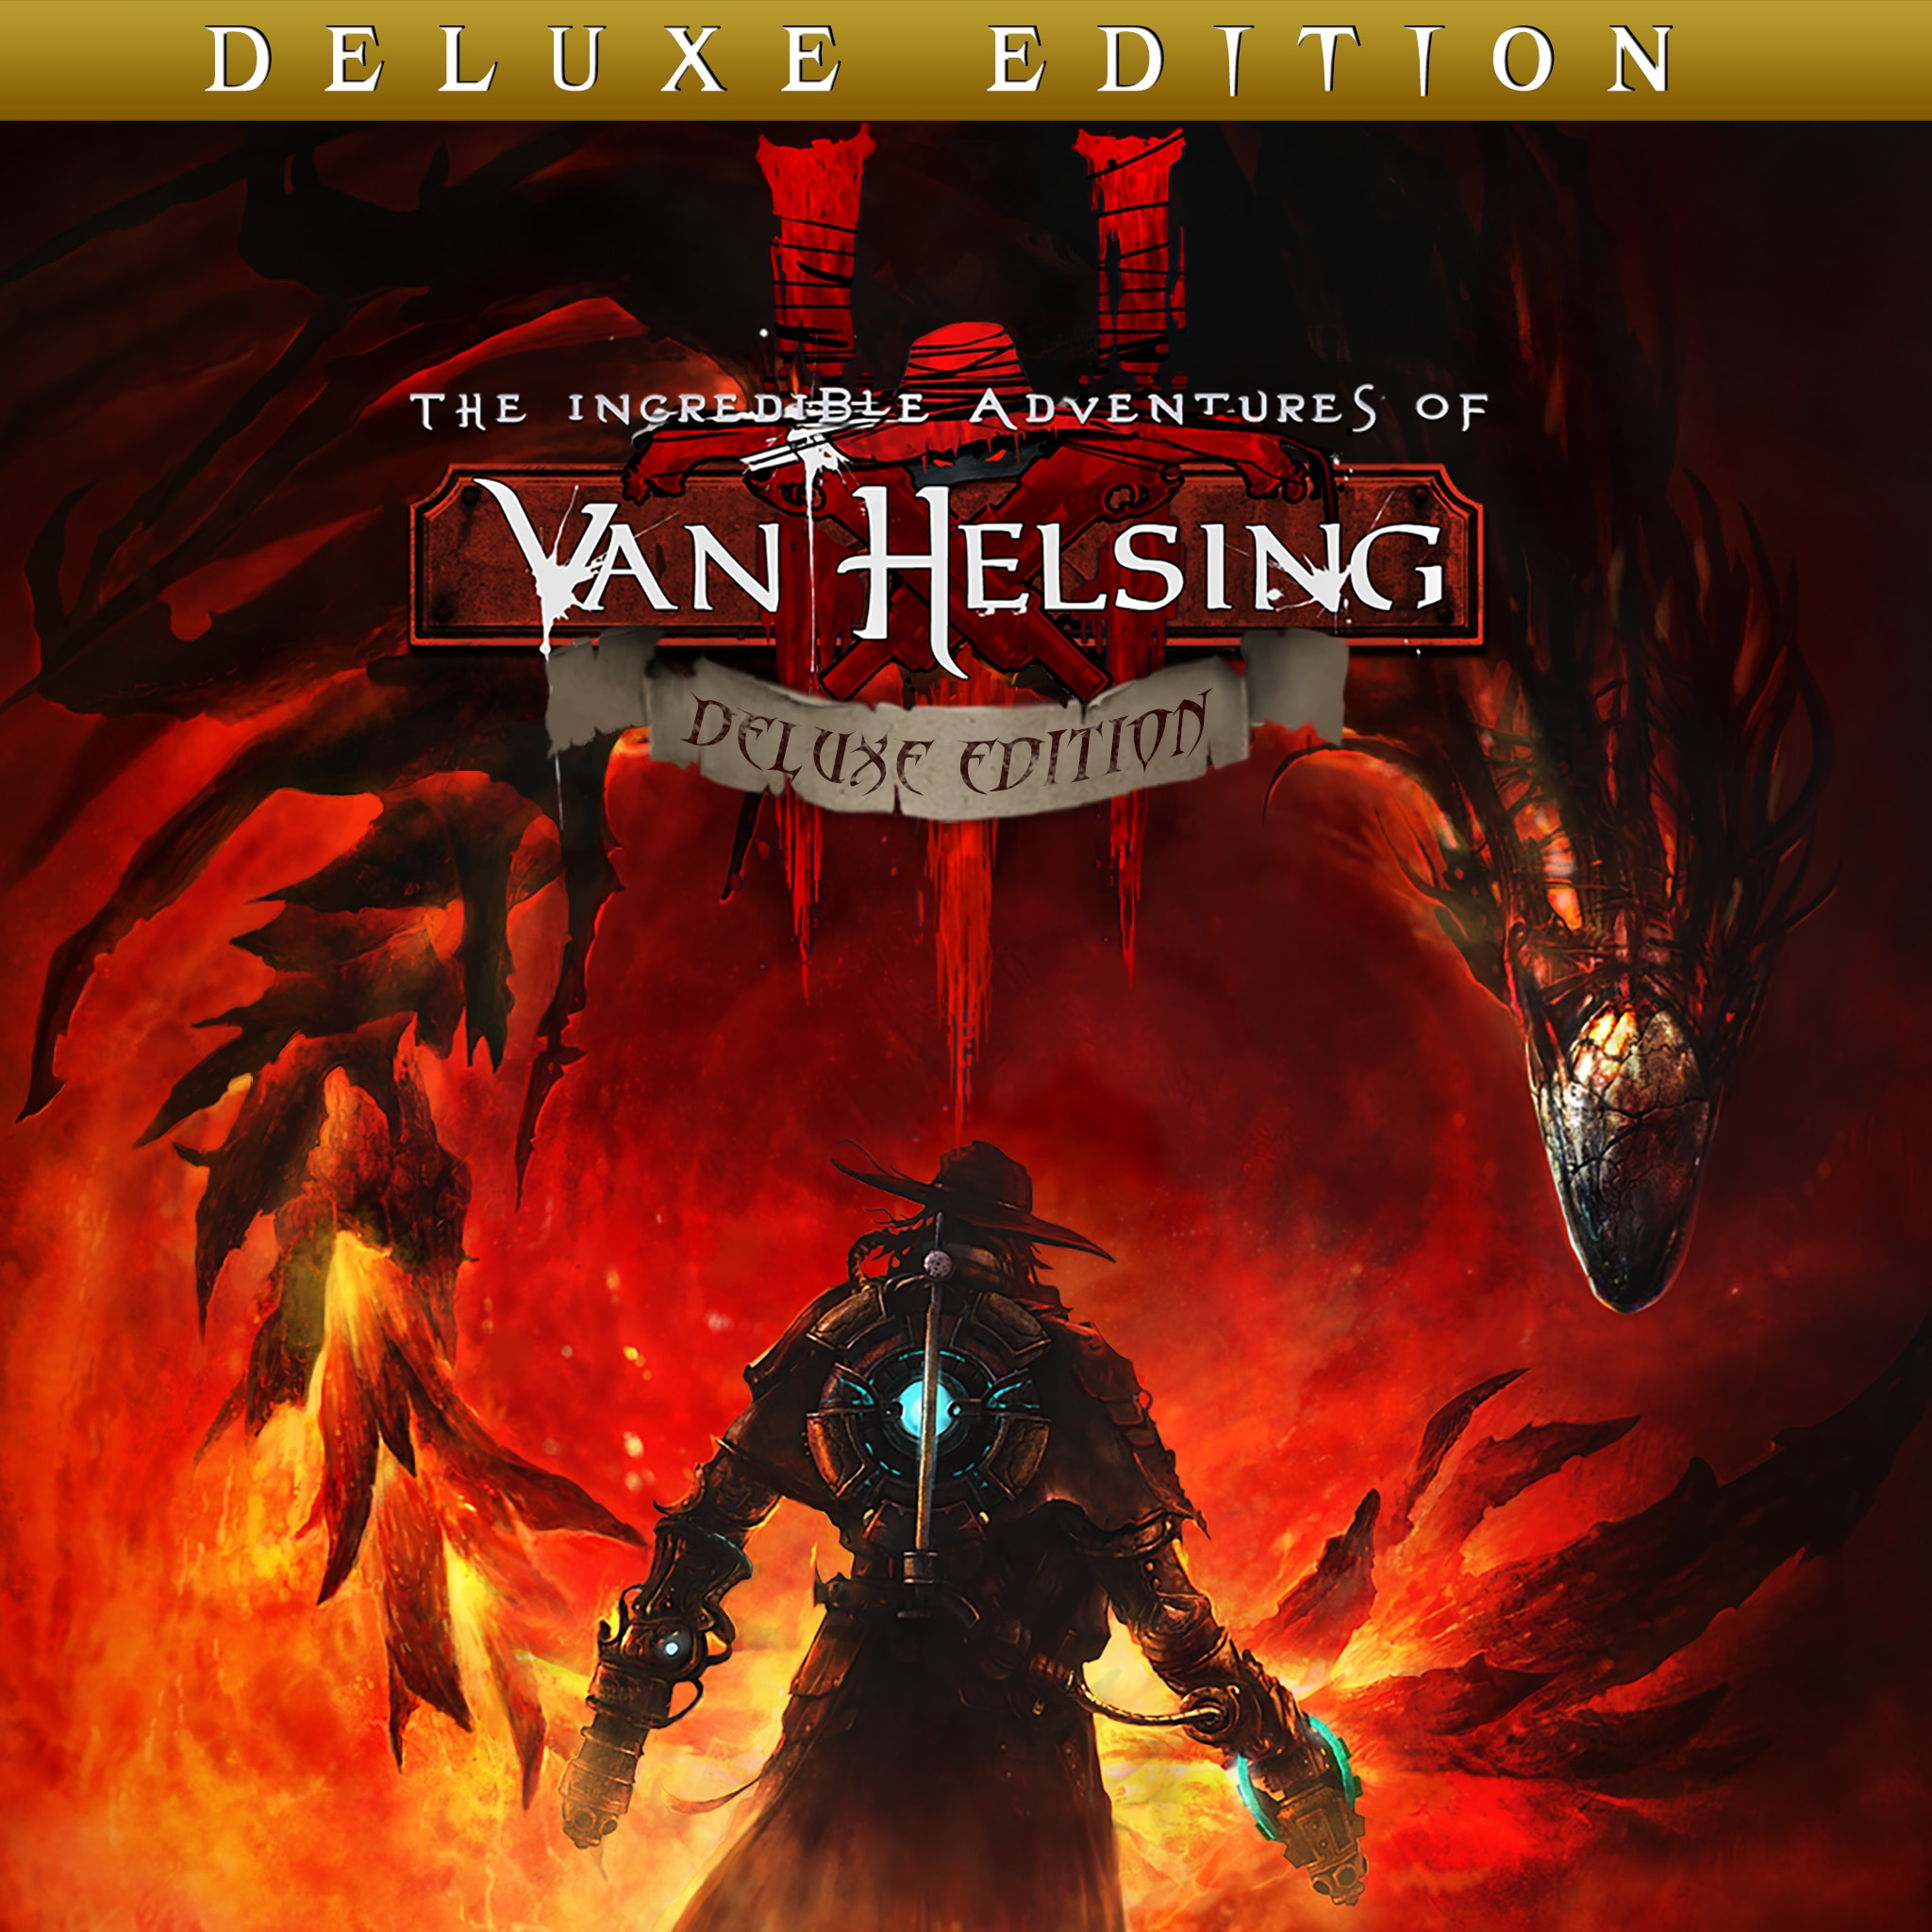 The Incredible Adventures of Van Helsing III Deluxe Edition